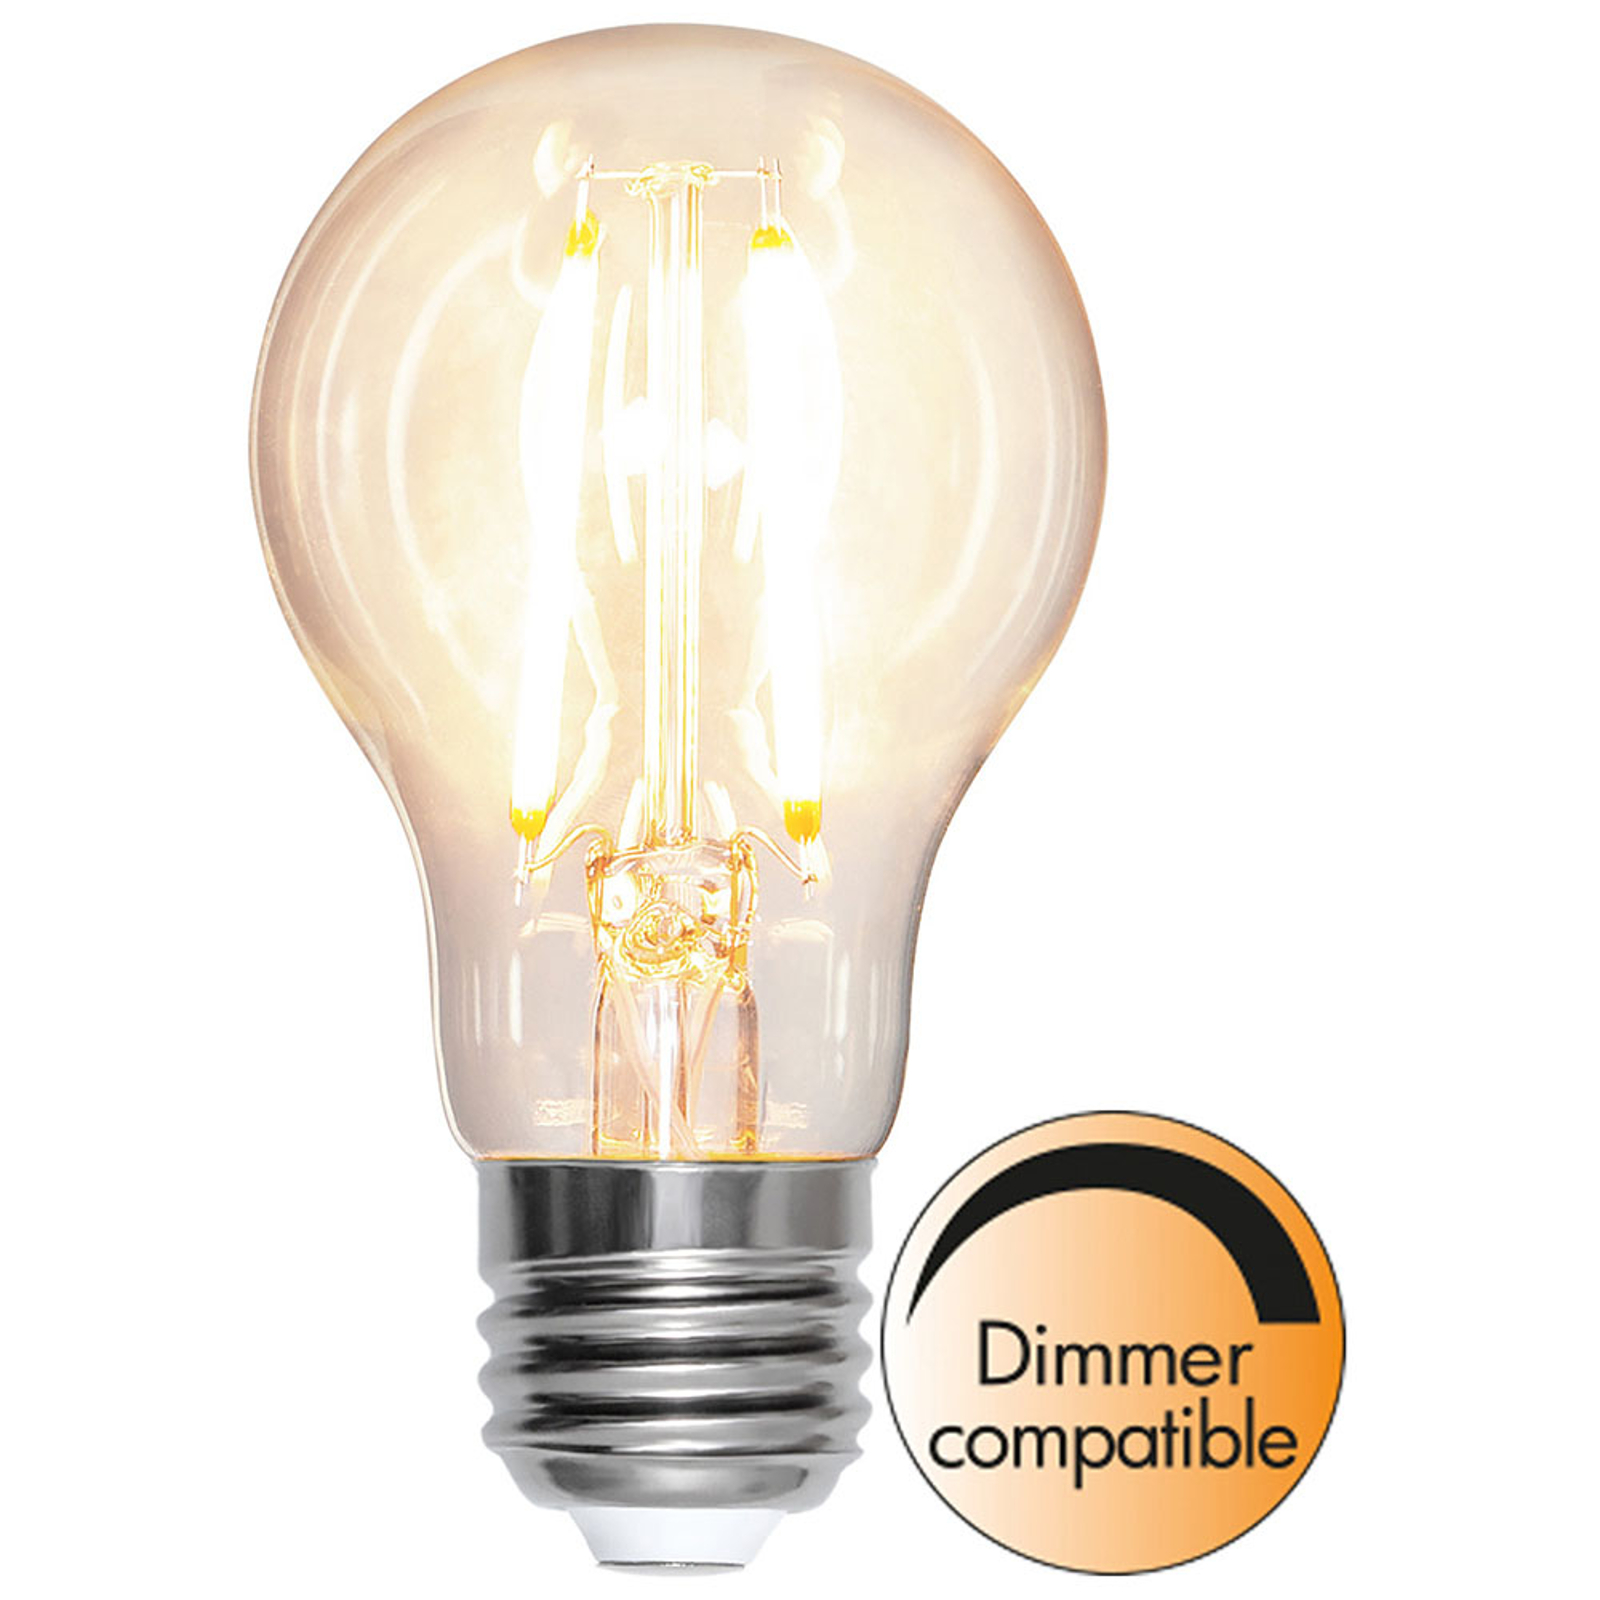 LED bulb E27 A60 8 W 2,700 K 810 lm dimmable_1523883_1